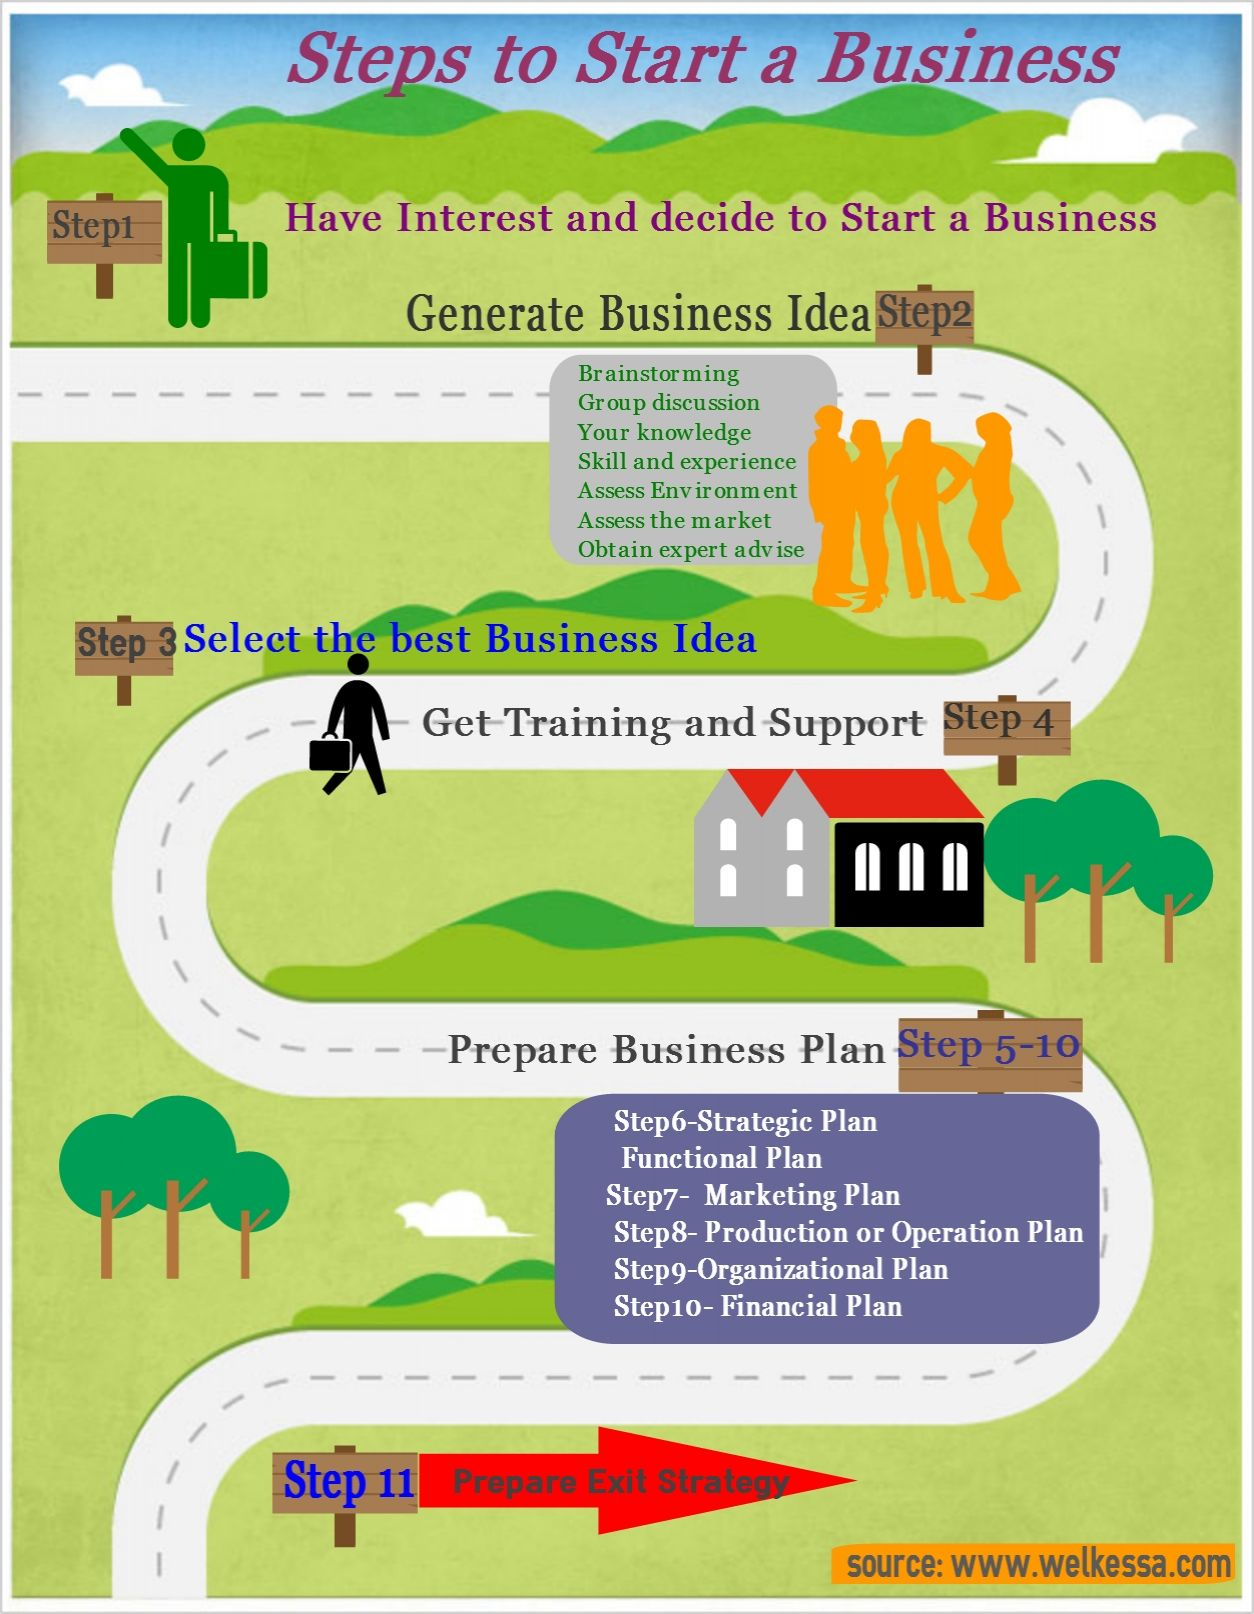 Steps to start a BusinessInfographic Repinned by Alpha